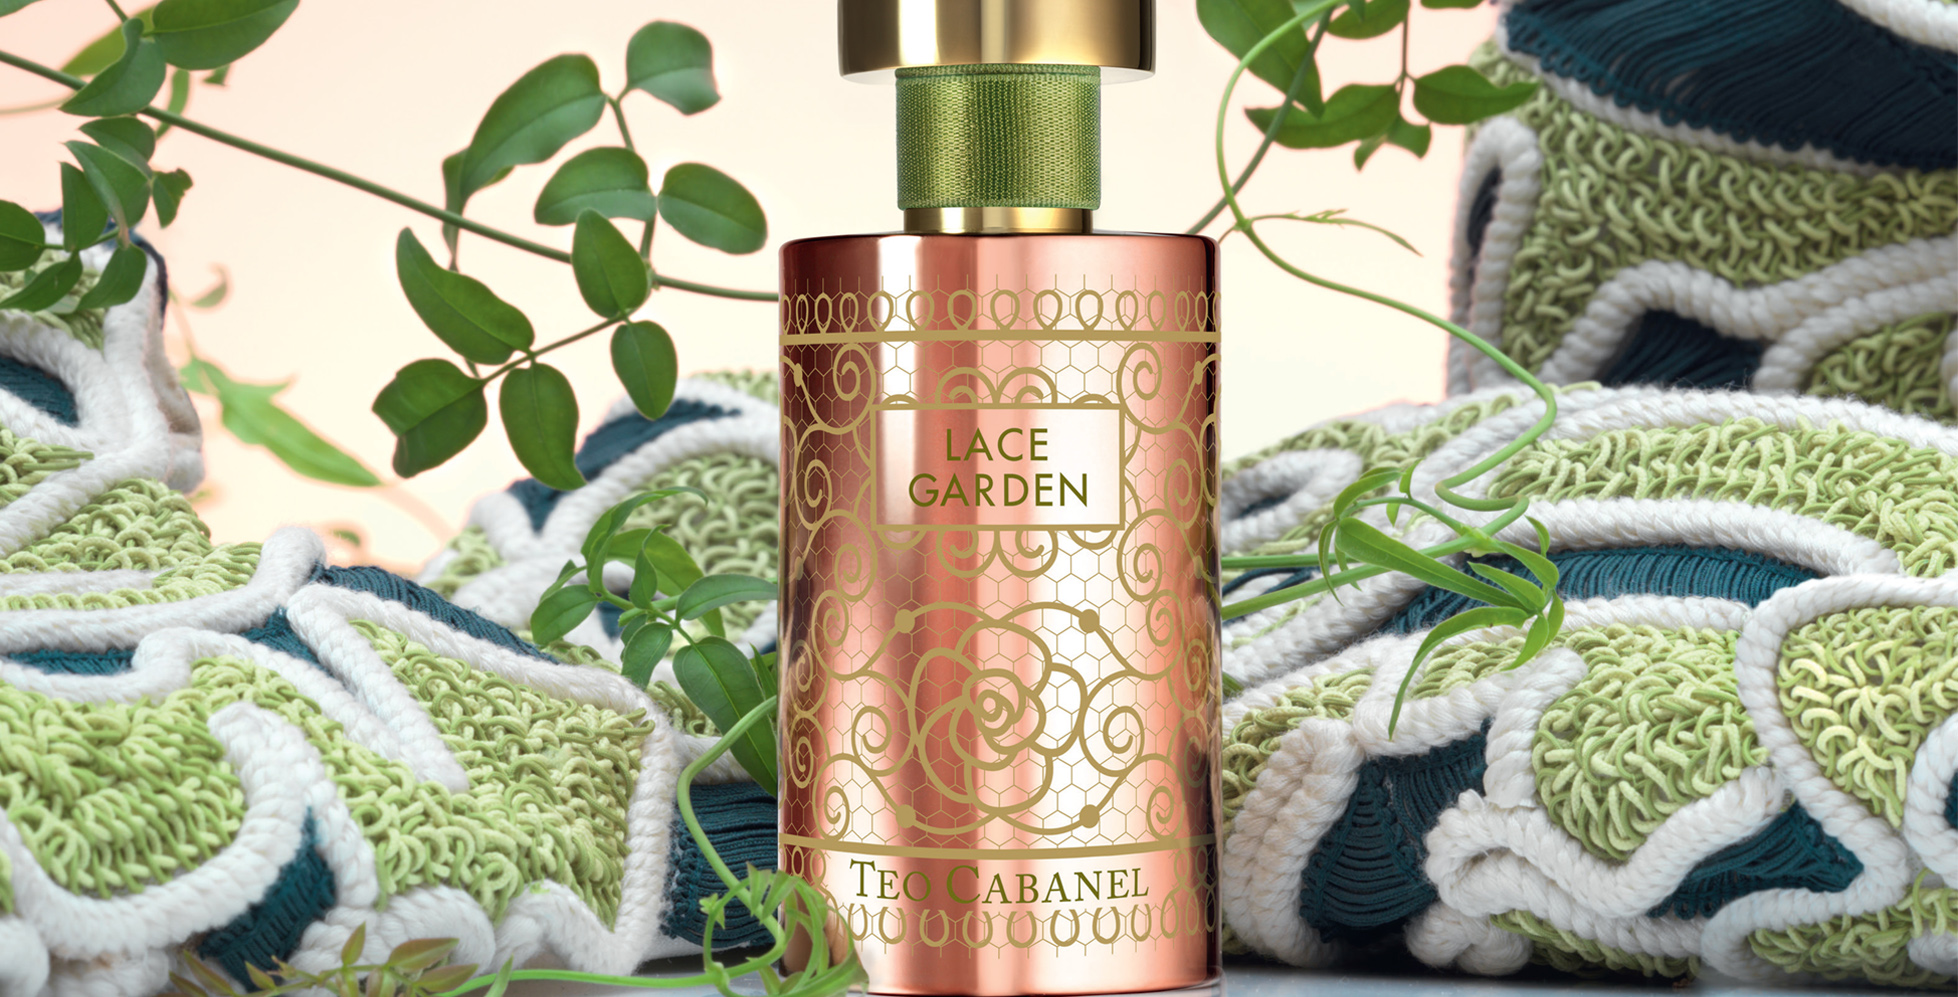 Parfum Musthave Teo Cabanel - Lace Garden